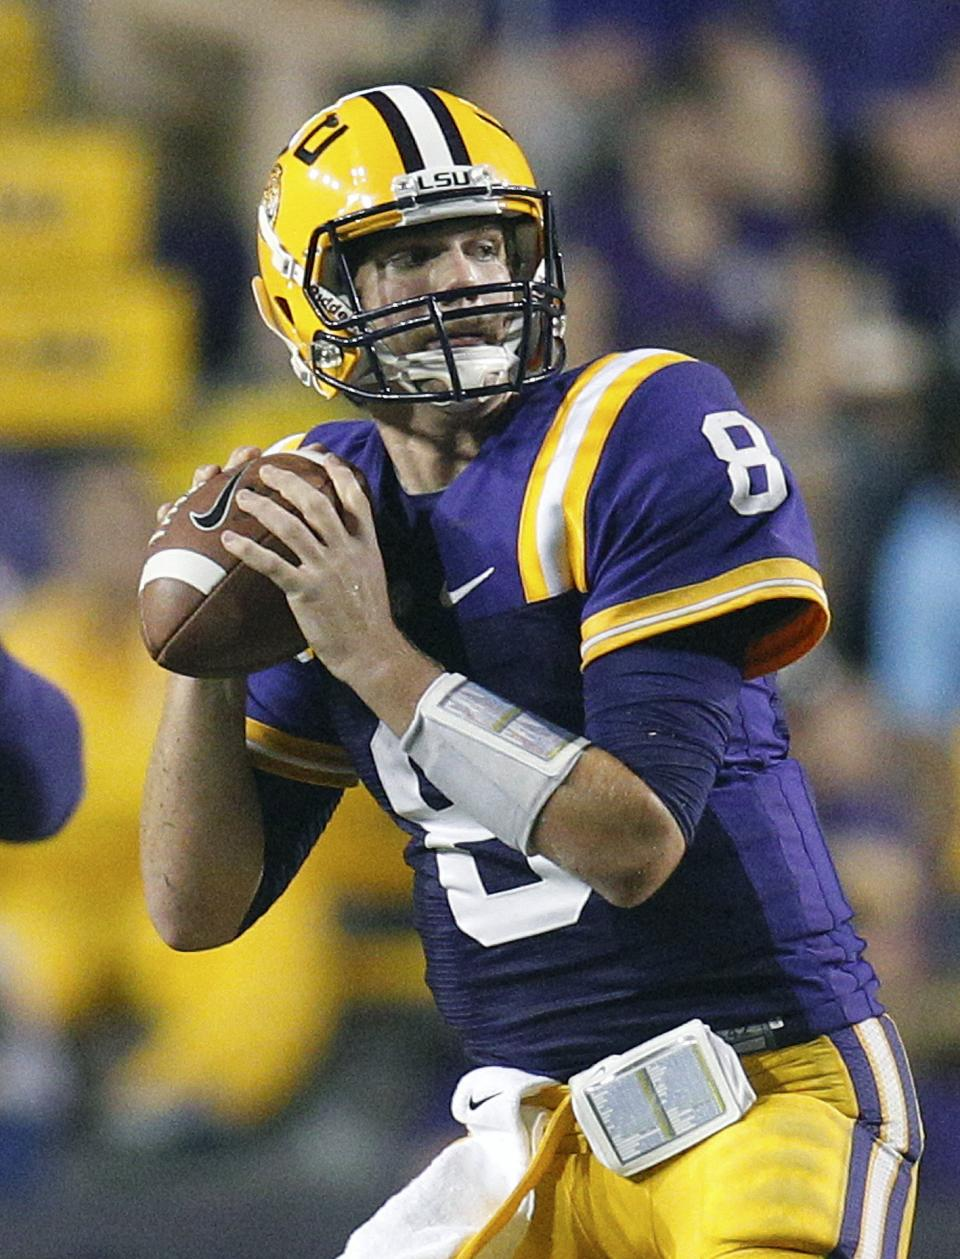 LSU quarterback Zach Mettenberger waits to throw to wide receiver Odell Beckham during the second half of an NCAA college football game against Towson in Baton Rouge, La., Saturday, Sept. 29, 2012. Mettenberger threw a 53-yard pass to Beckham on this play. (AP Photo/Bill Haber)